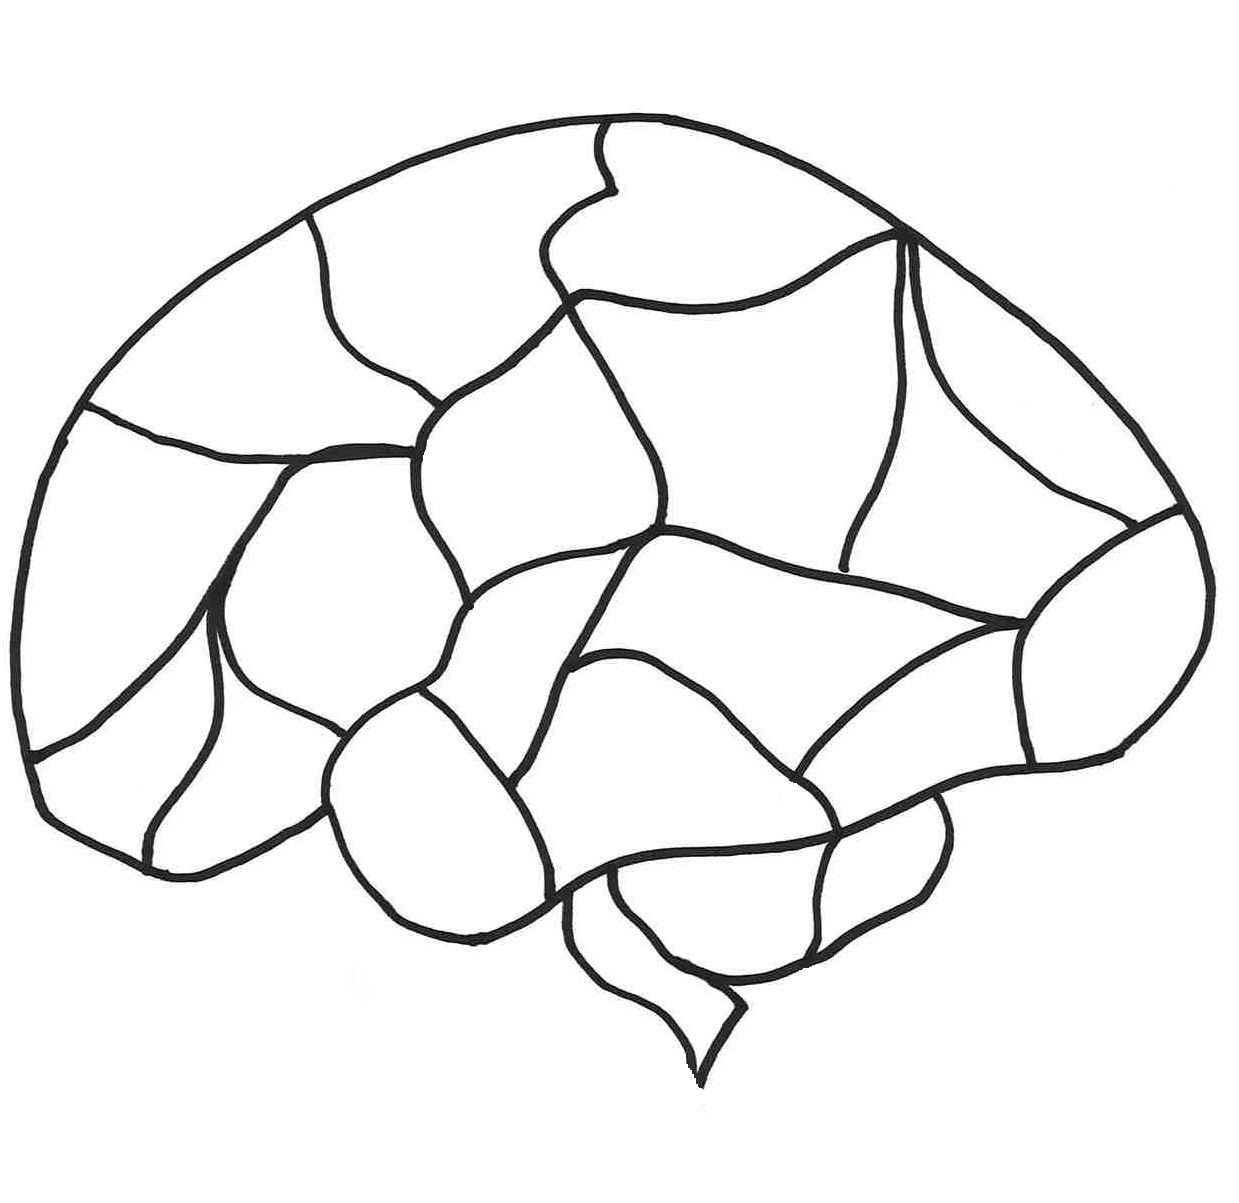 It's just a photo of Juicy Printable Brain Template